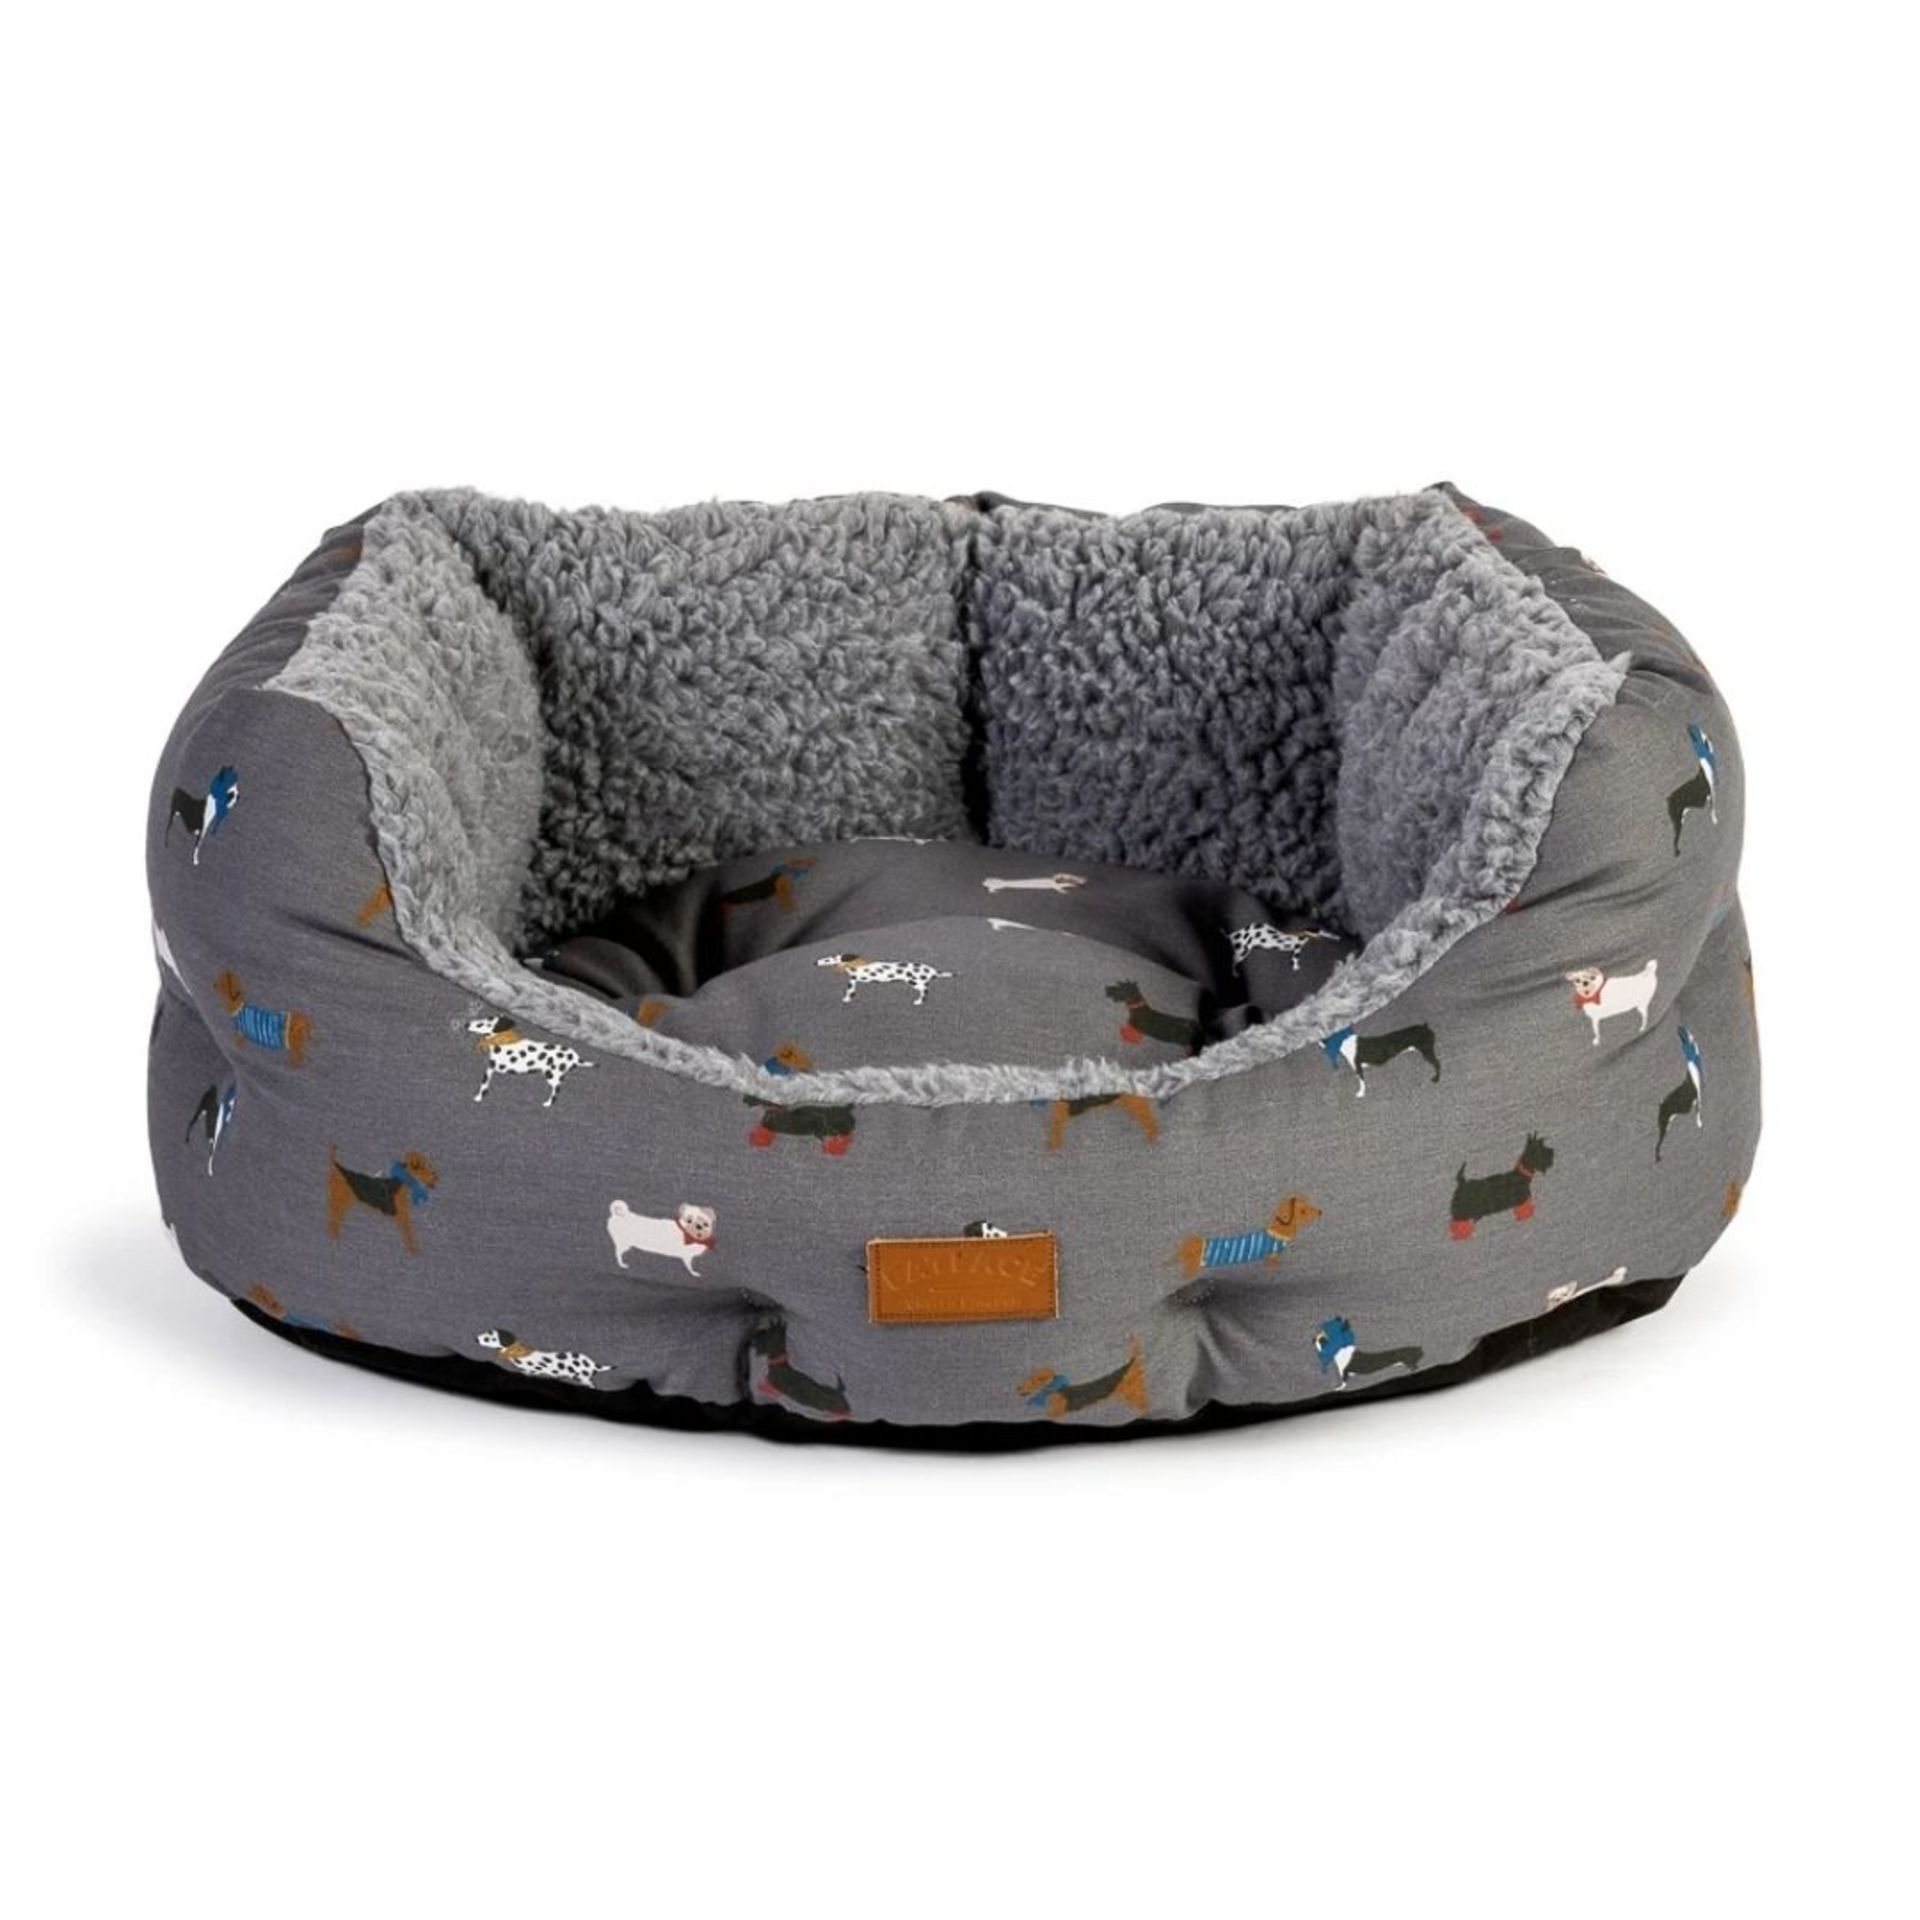 FatFace Marching Dogs Deluxe Slumber Dog Bed - M